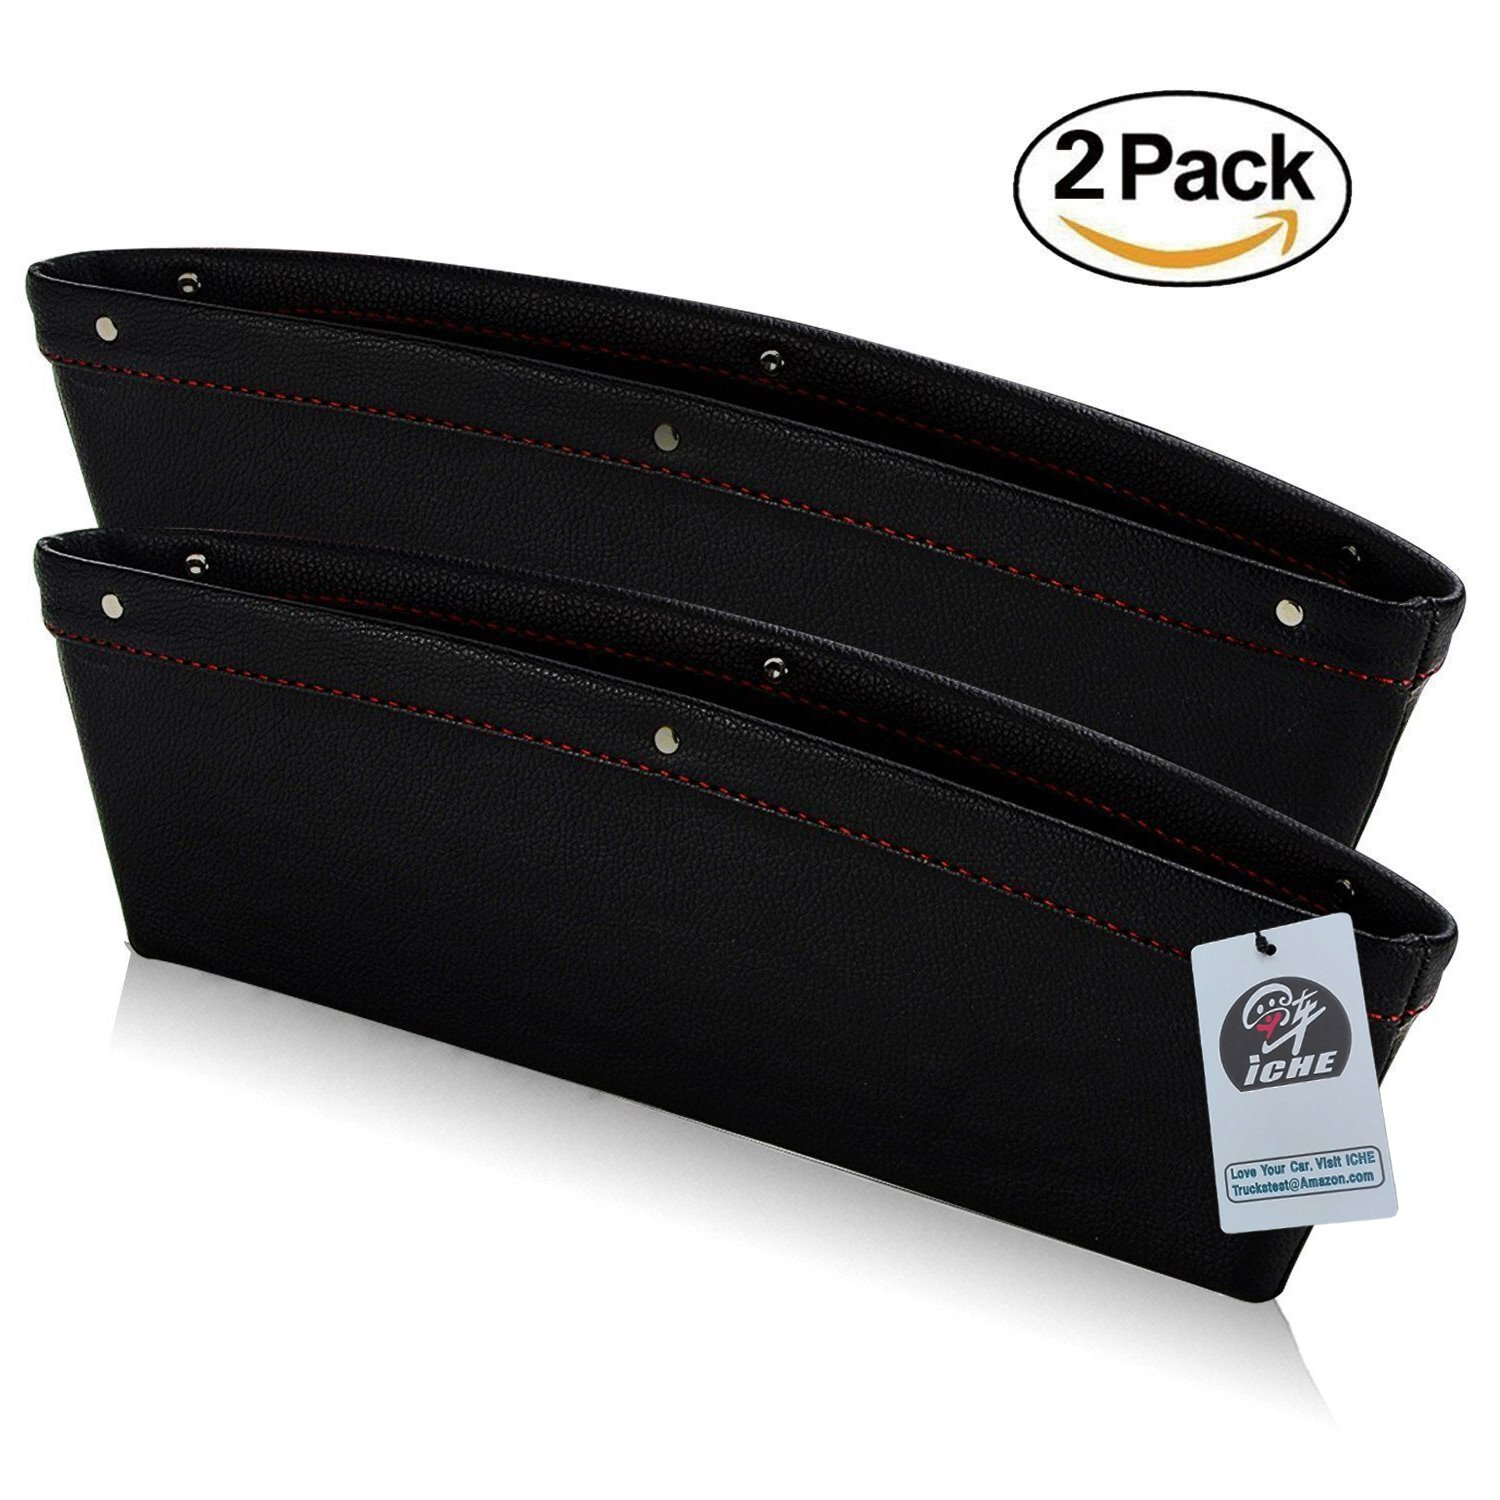 ICHE Car Pocket Organizer Car Seat Gap Filler Catch Caddy - Between Seat and Console - PU Leather - Pack of 2